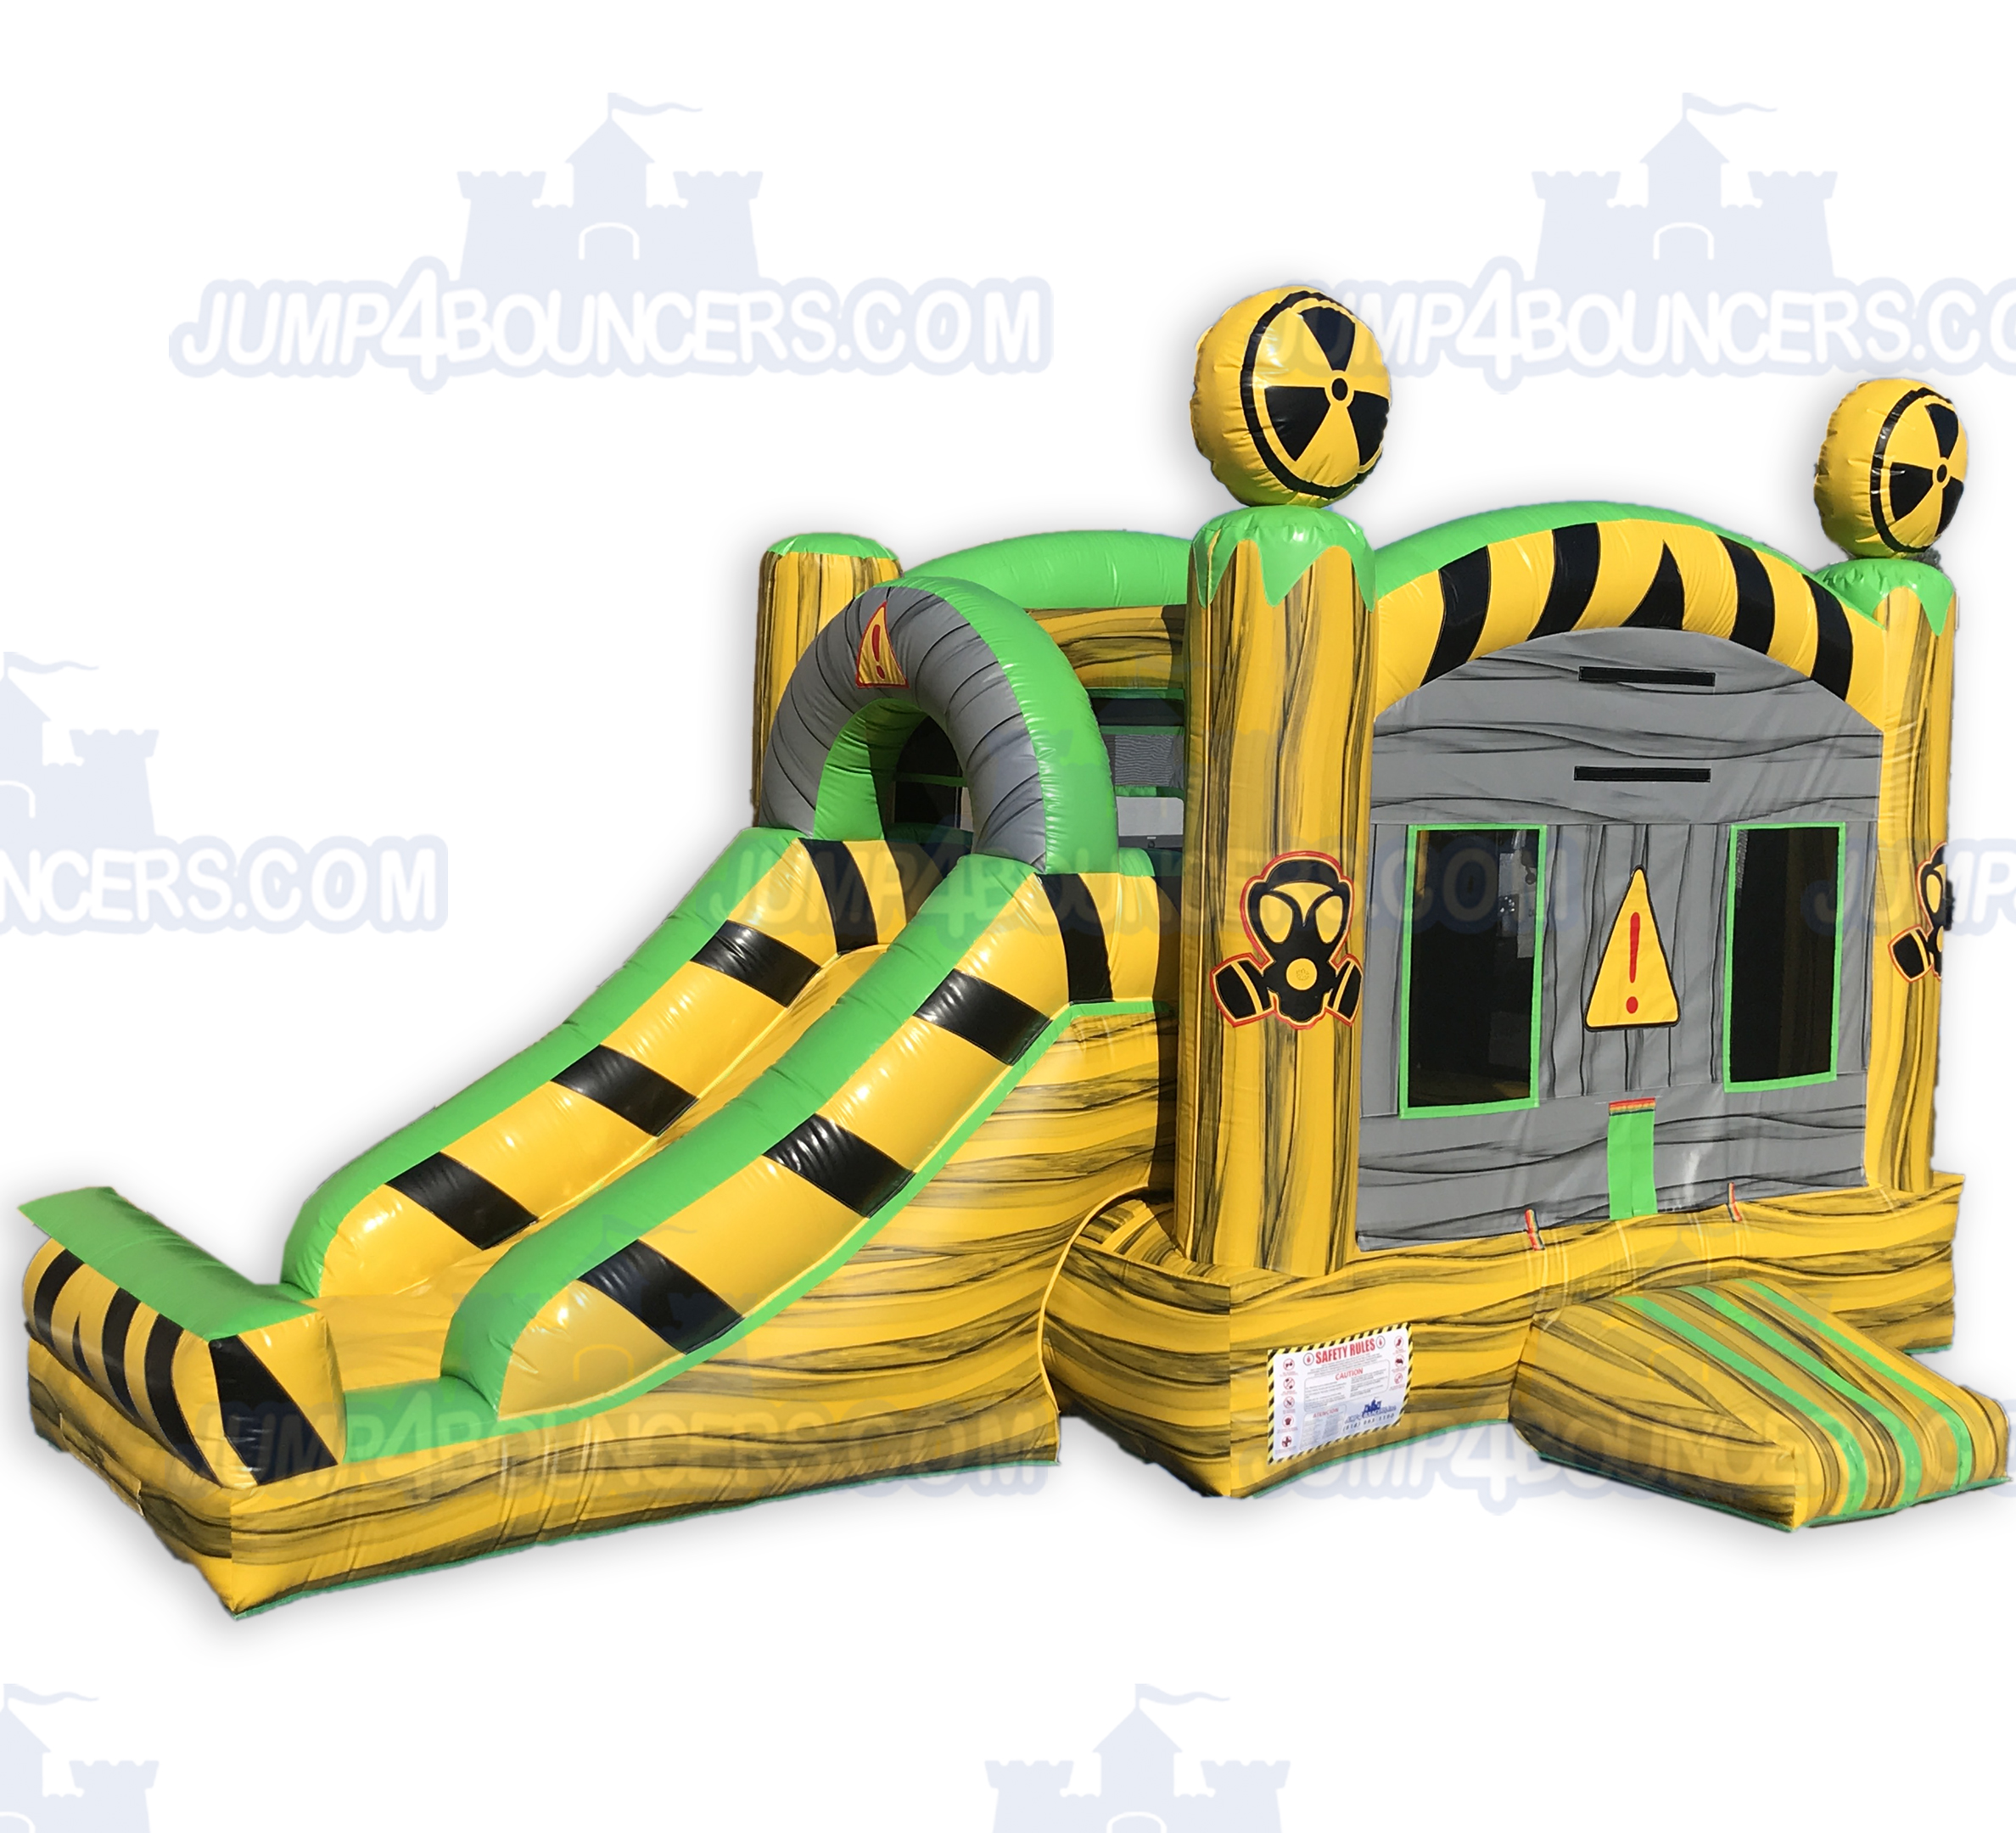 Dco2131 Toxic Jump And Slide Combo Jumpers For Sale In